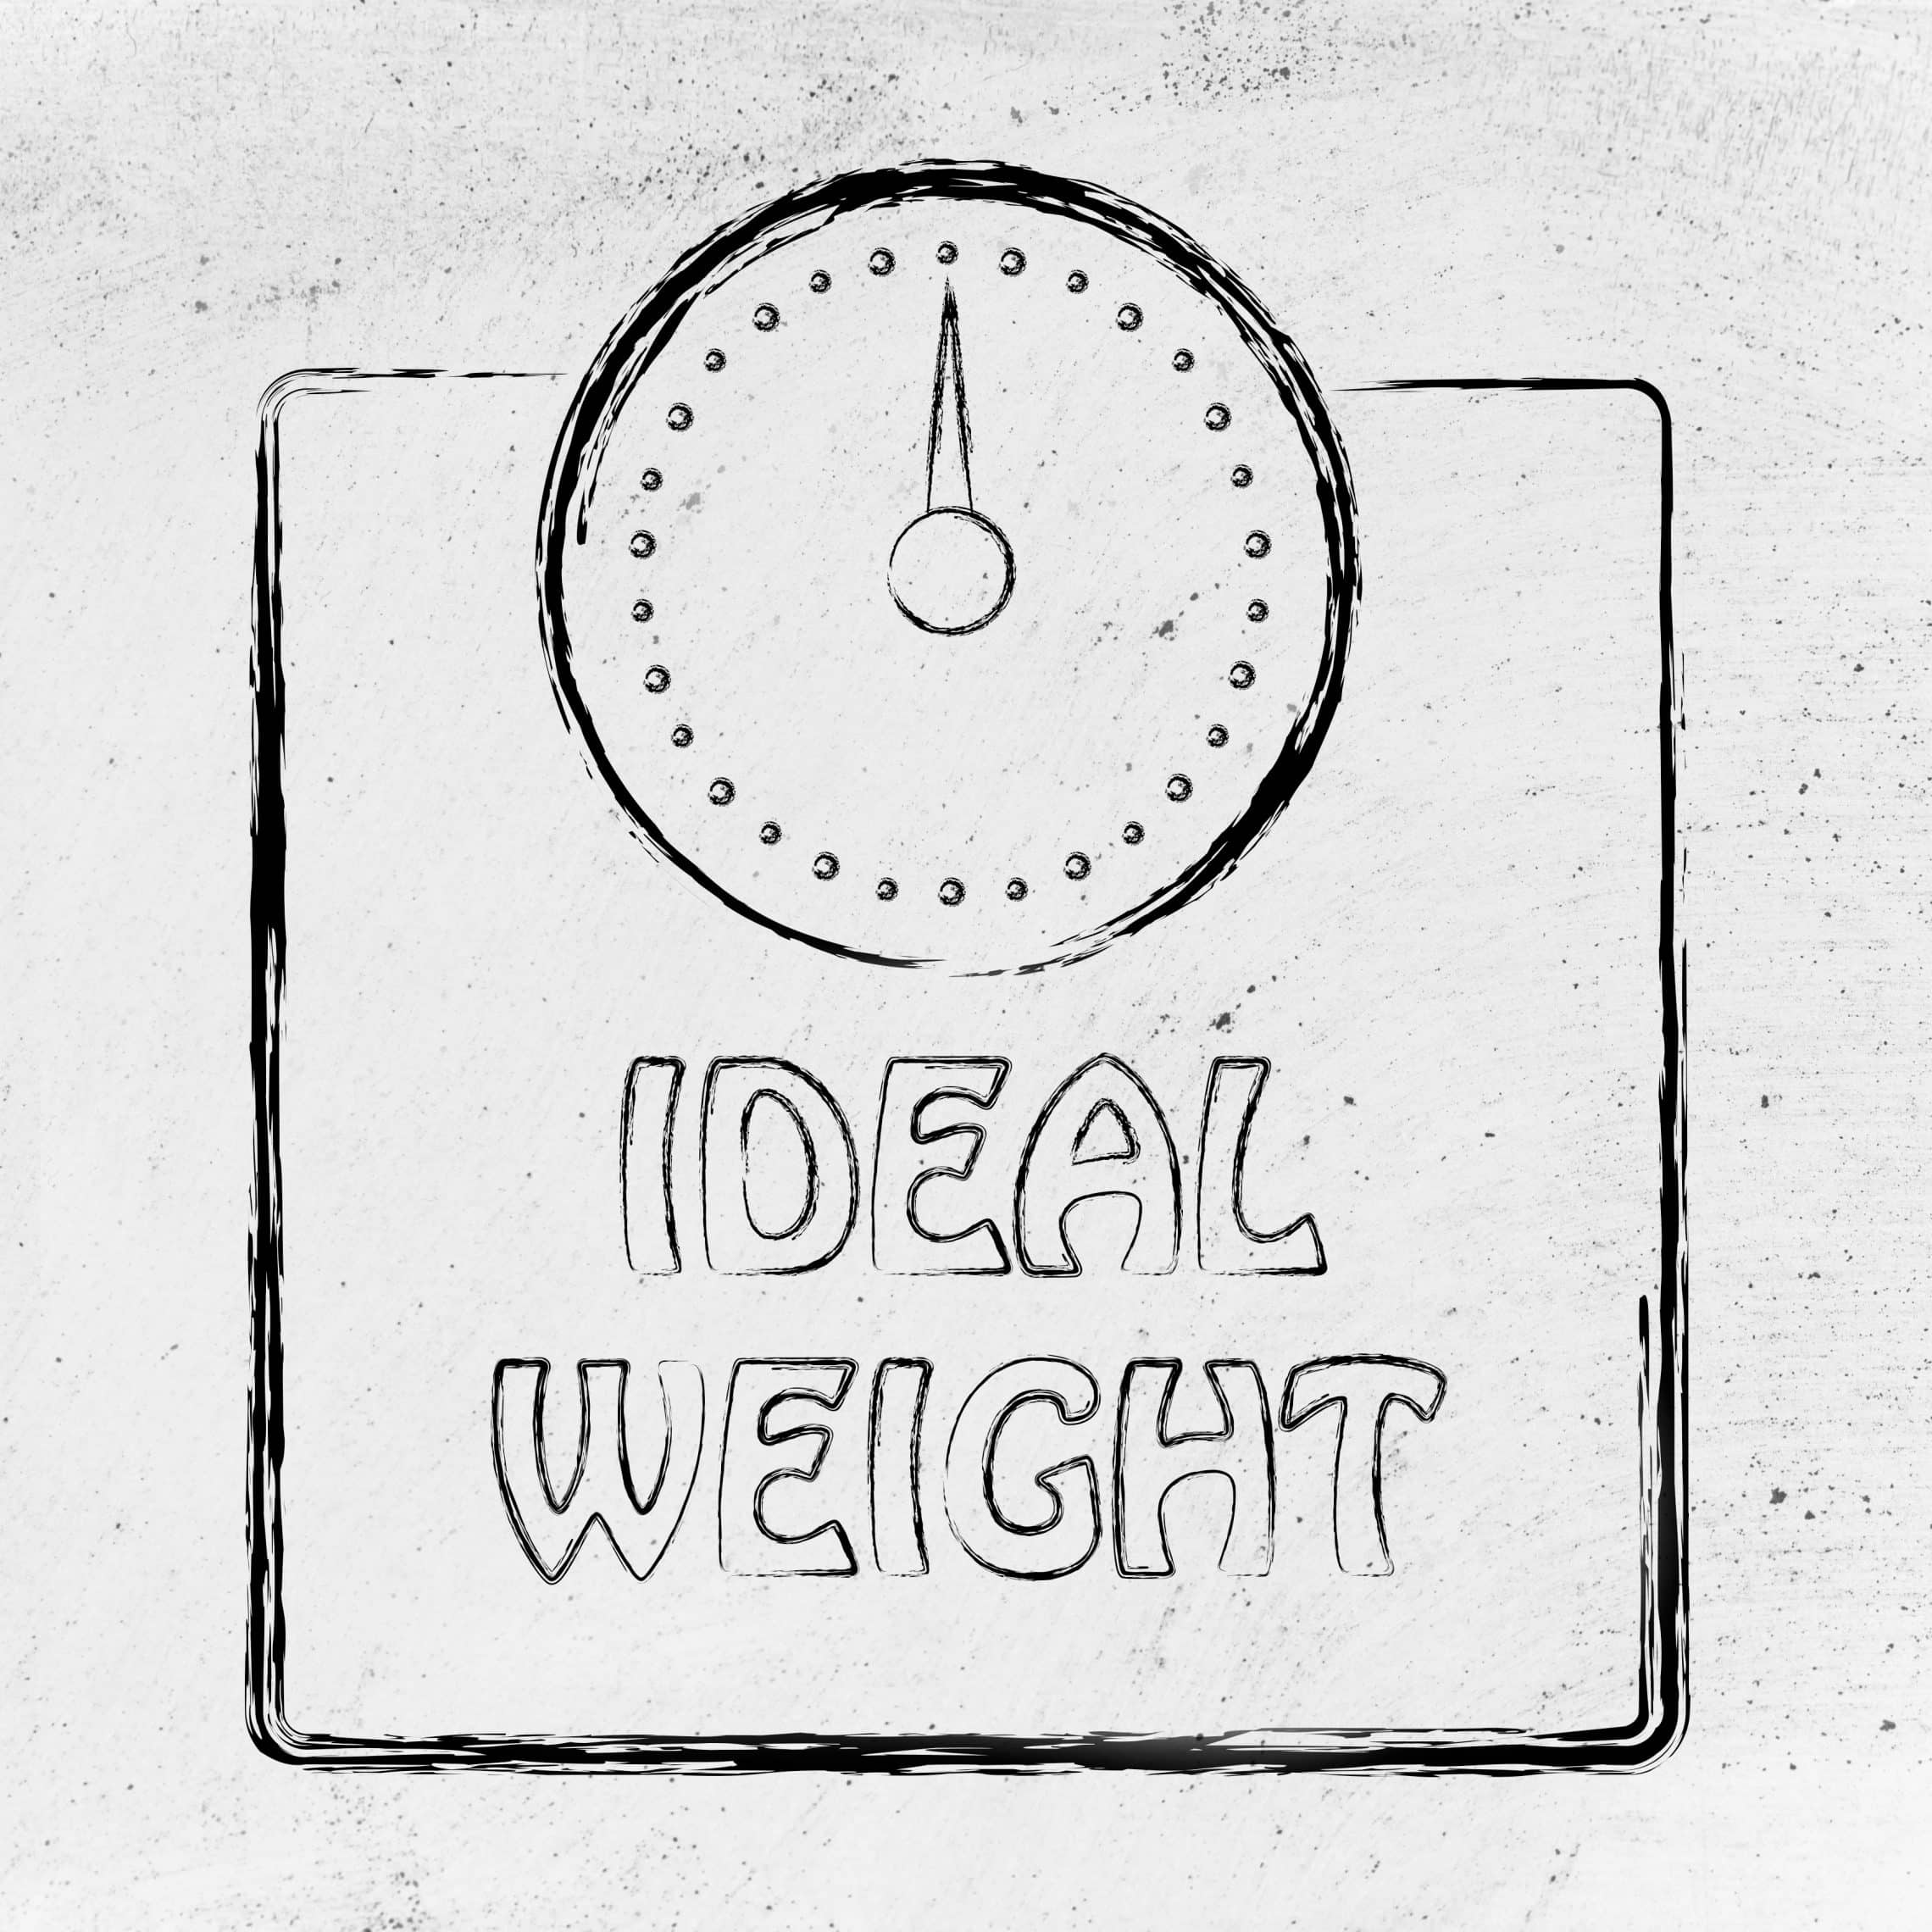 What's The Ideal Weight For My Height? | Slimming World